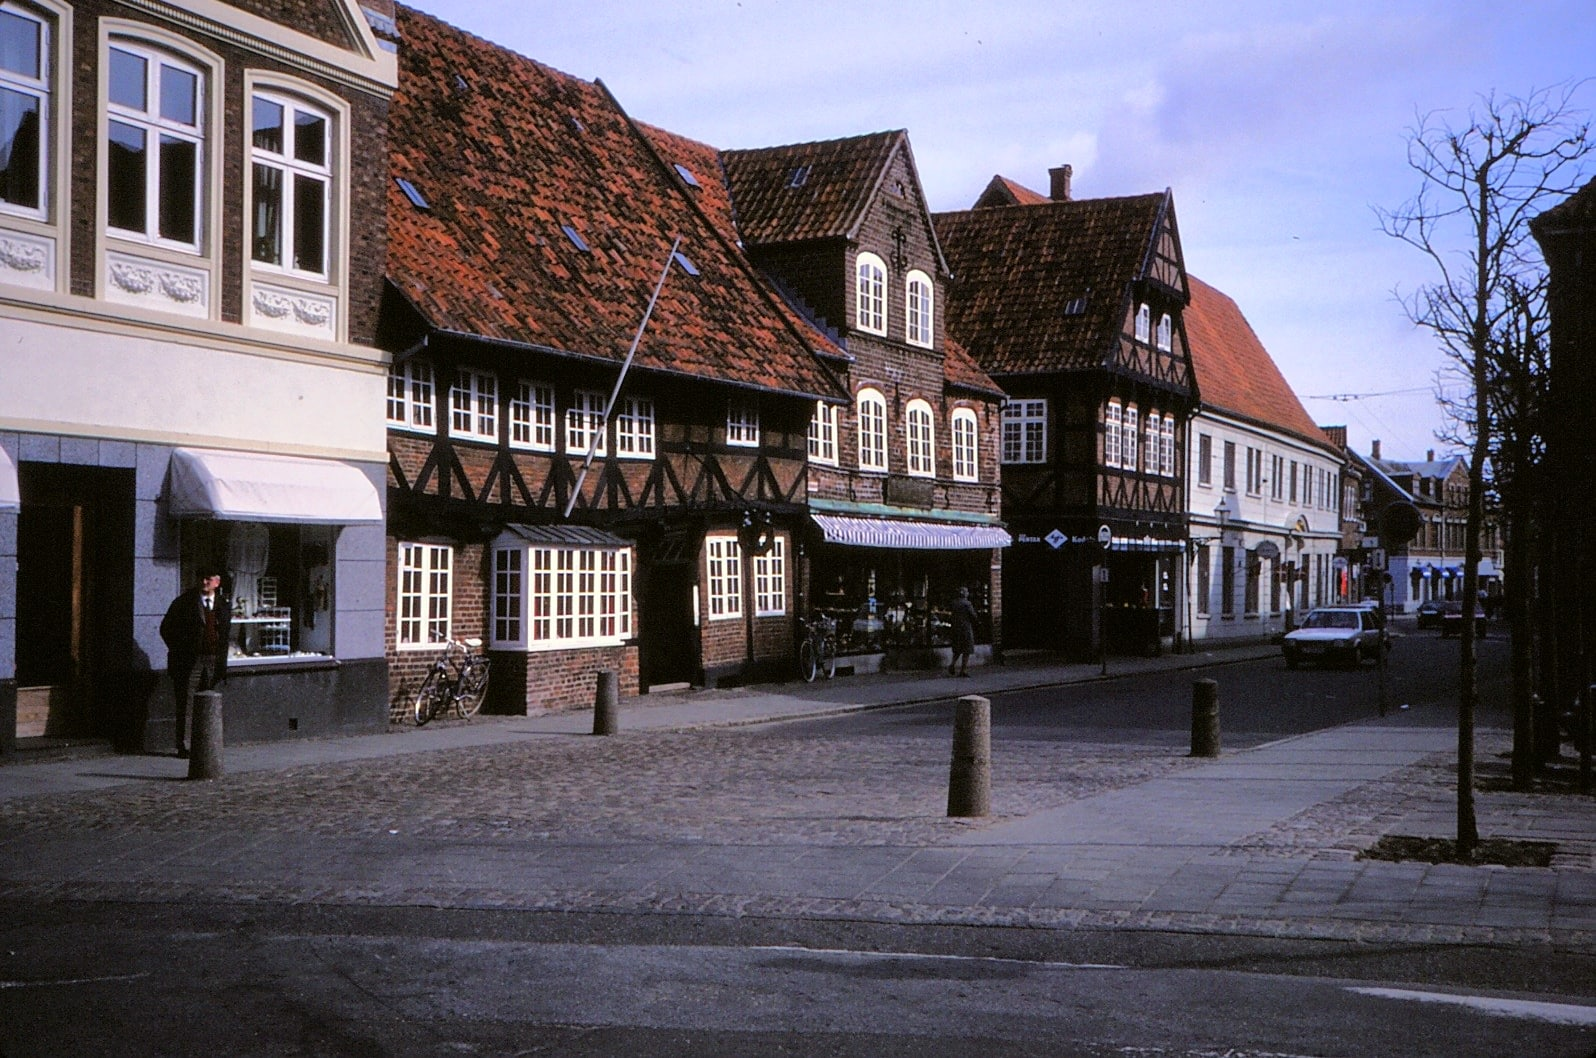 Ribe is the oldest city in Denmark and perhaps one of the most beautiful places in the country.